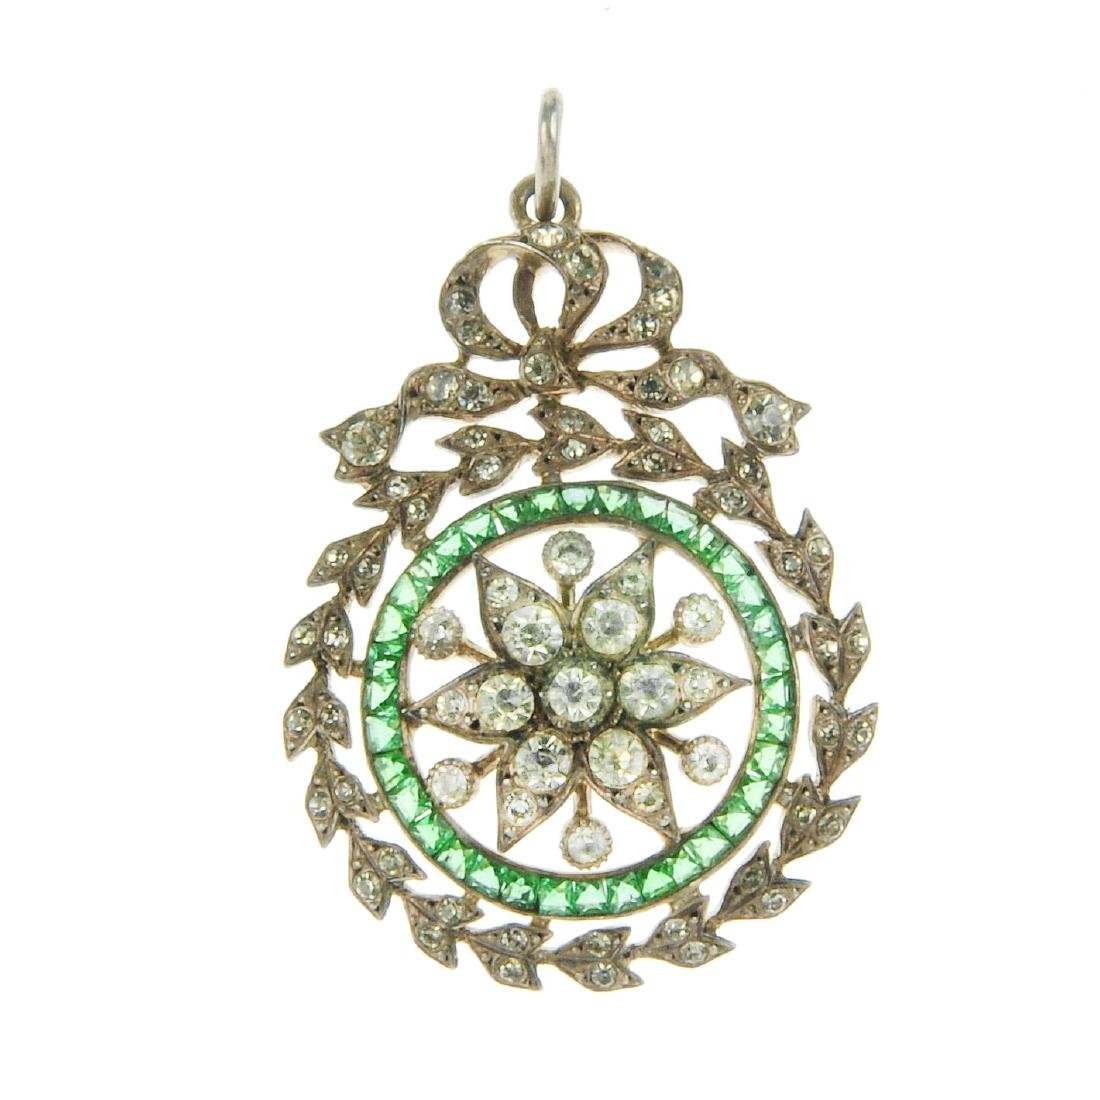 An early 20th century silver paste pendant. Designed as